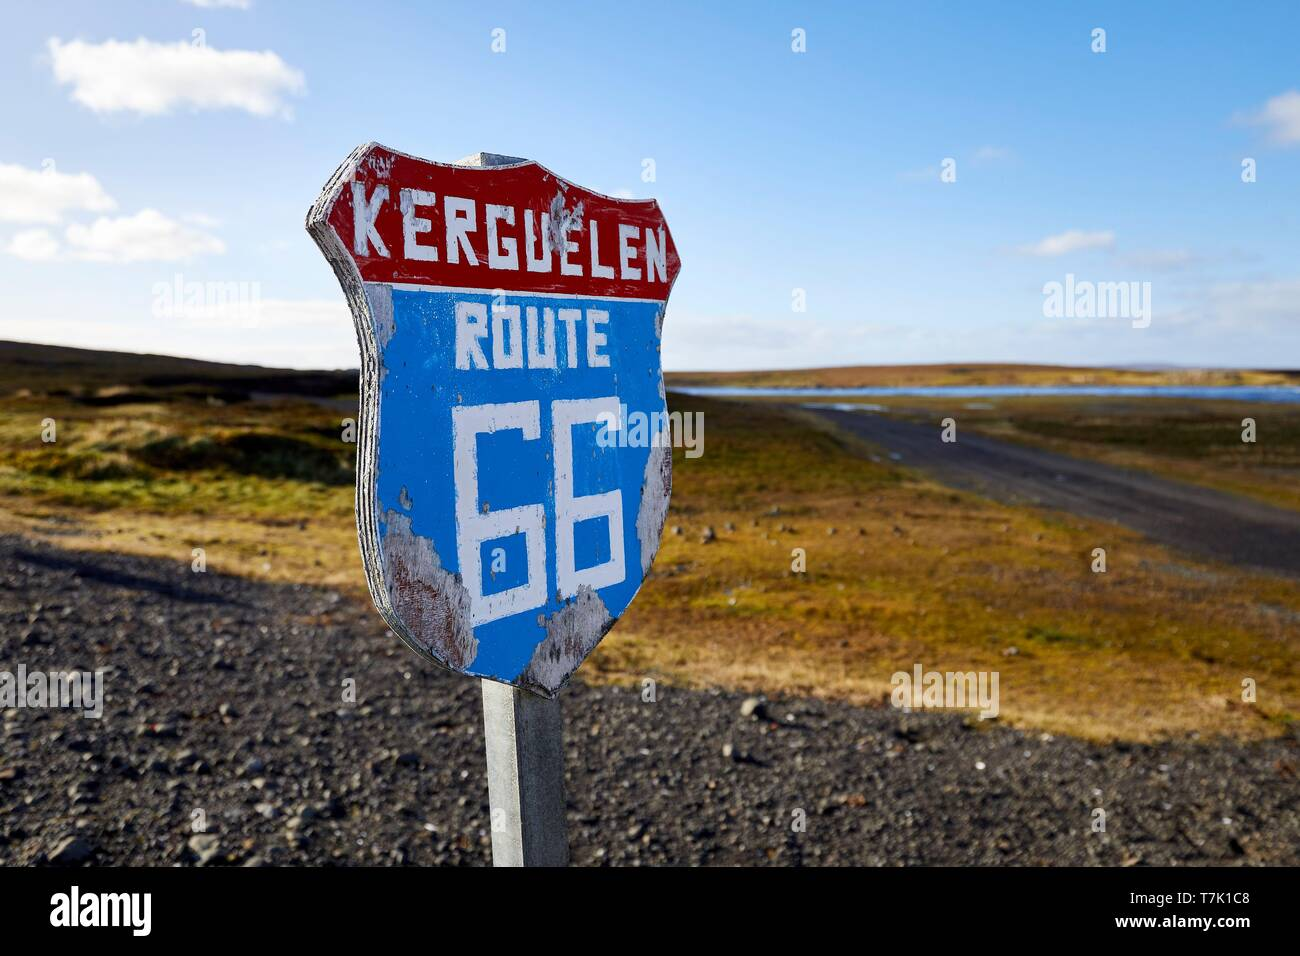 France, French Southern and Antarctic Territories (TAAF), Kerguelen Islands, Port-aux-Français, signpost of the road 66 panneau which leads to the meteo stations and the geophysics station - Stock Image